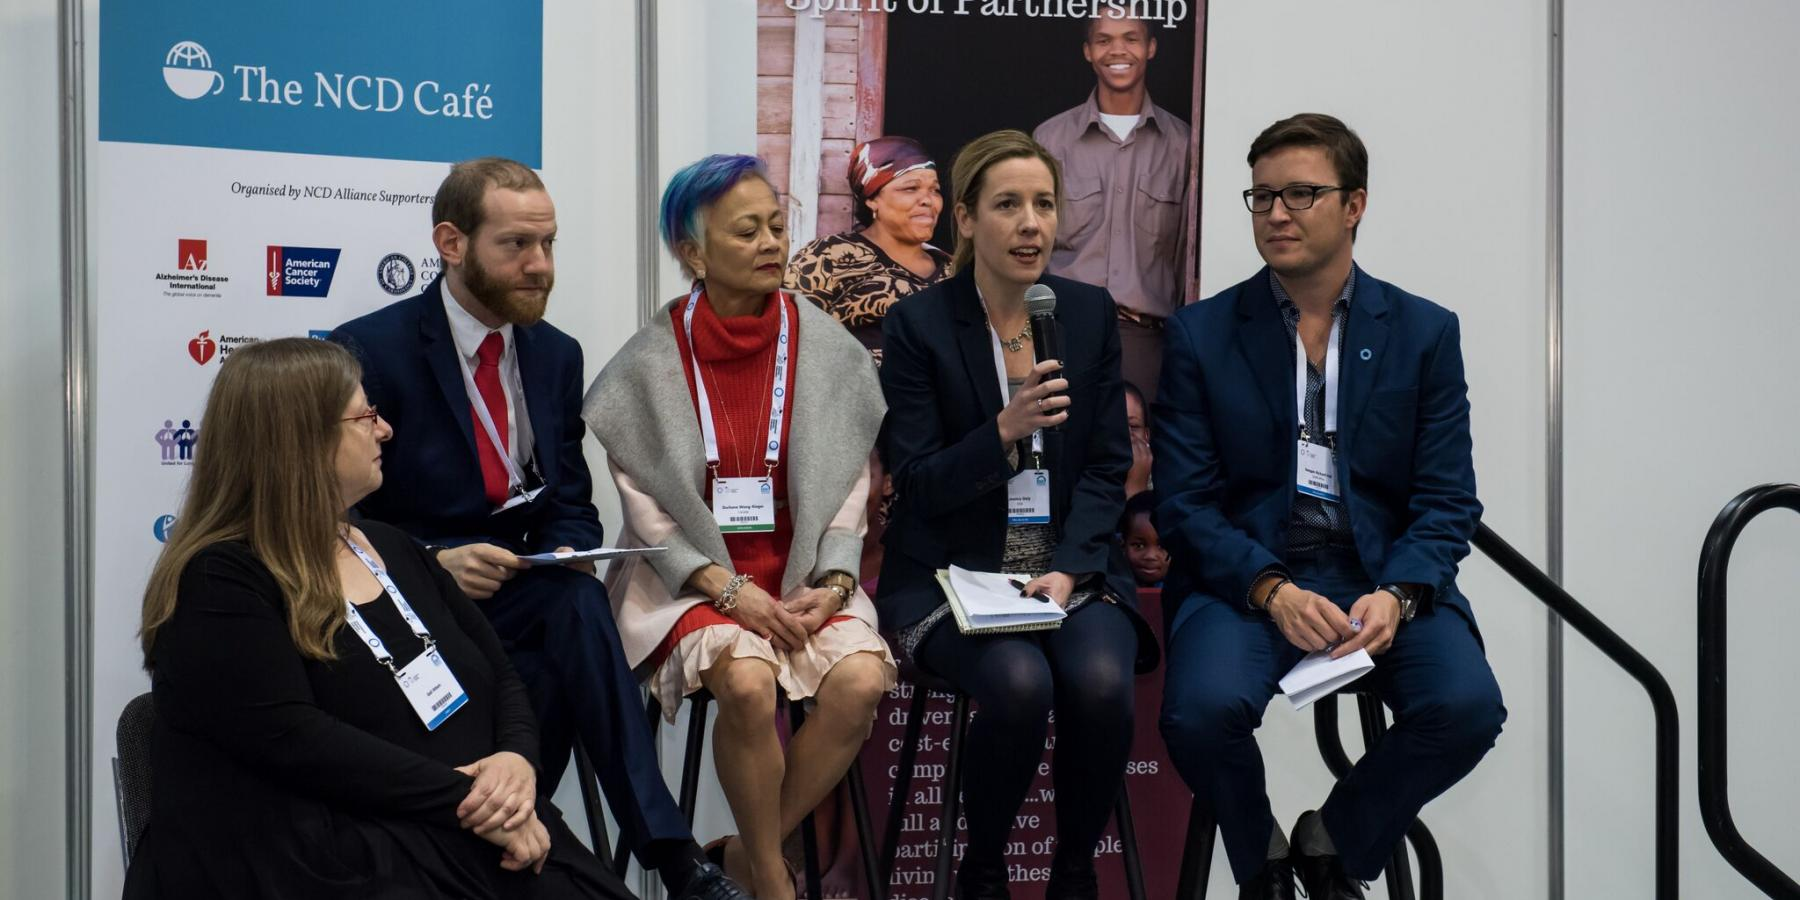 NCD Dialogues (Cape Town) & NCD Cafe (Vancouver), December 2015